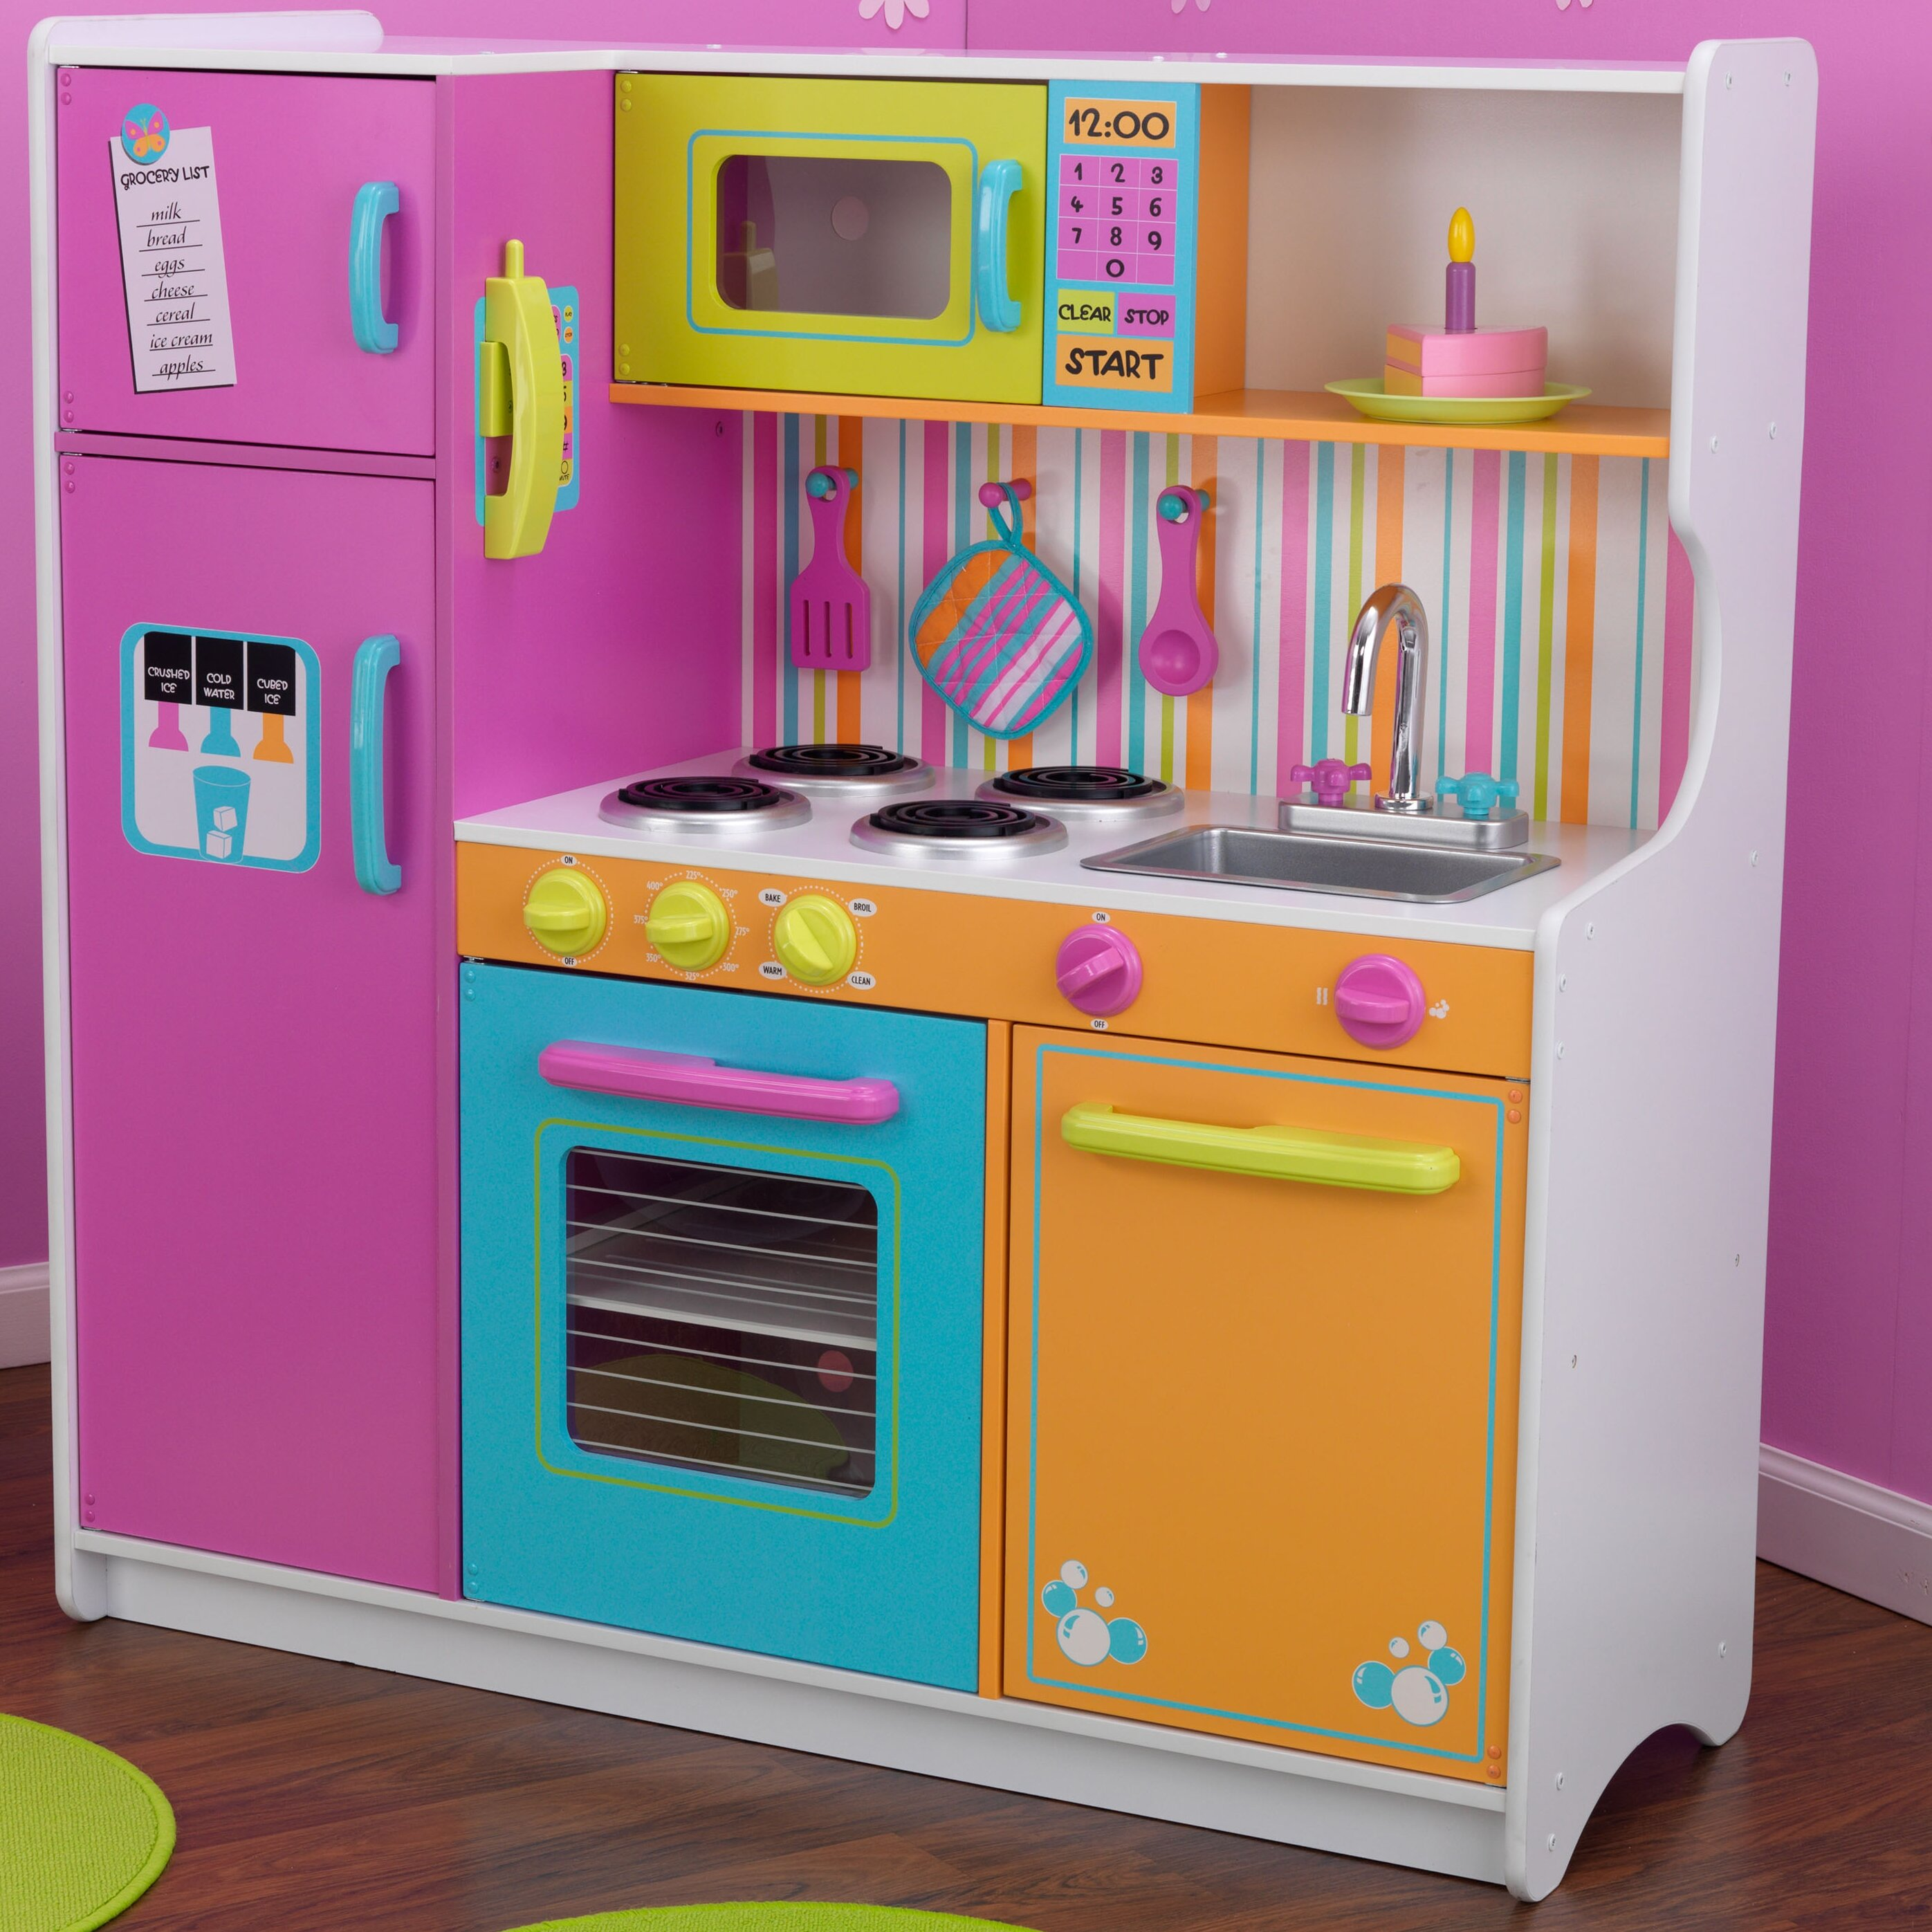 Kidkraft deluxe big bright kitchen play set reviews Bright kitchen